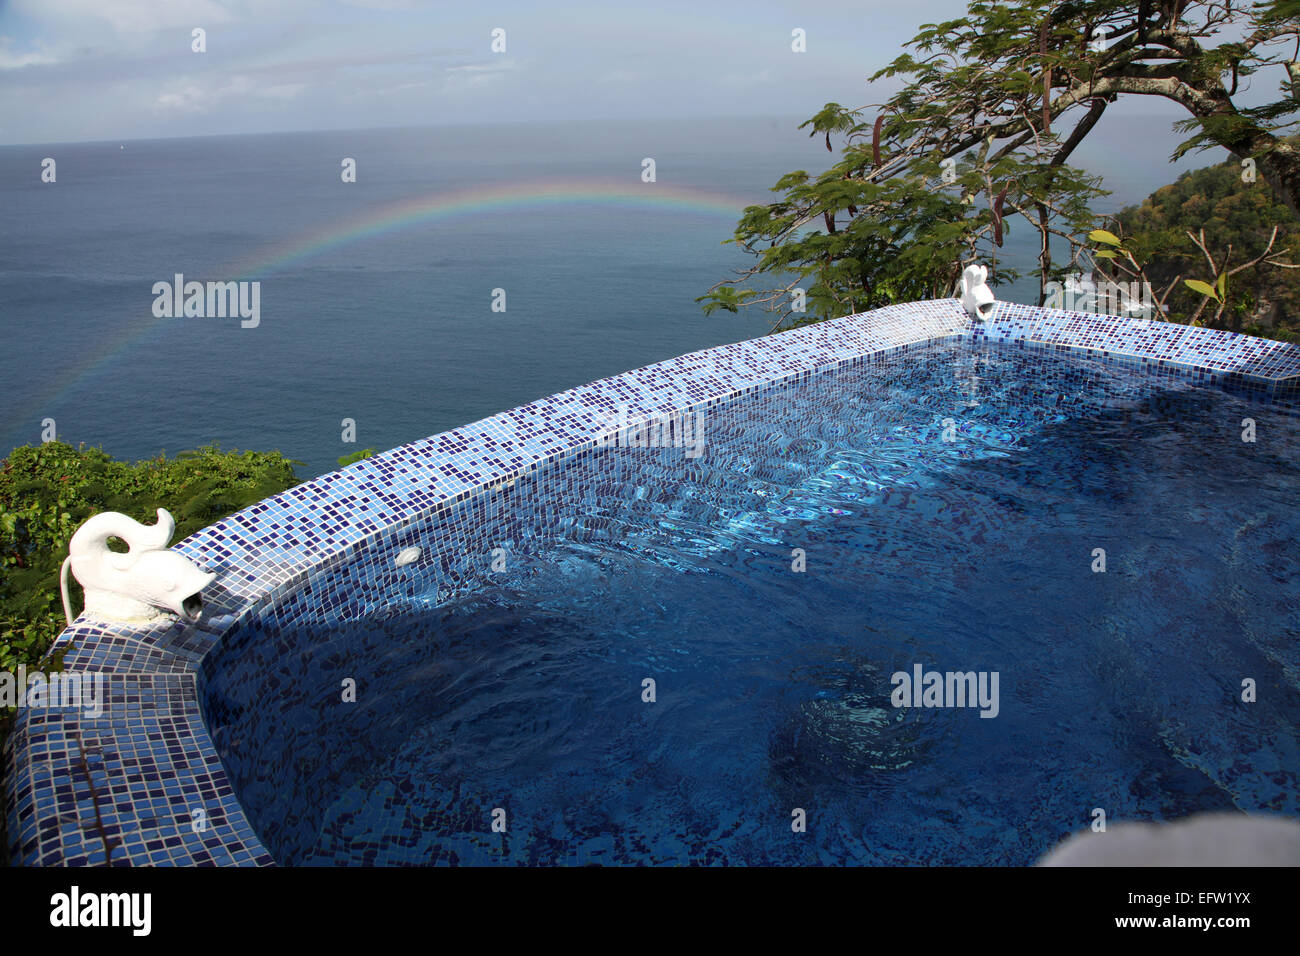 A Plunge pool and Carob Tree on the edge of the Caribbean ocean with a rainbow behind - Stock Image